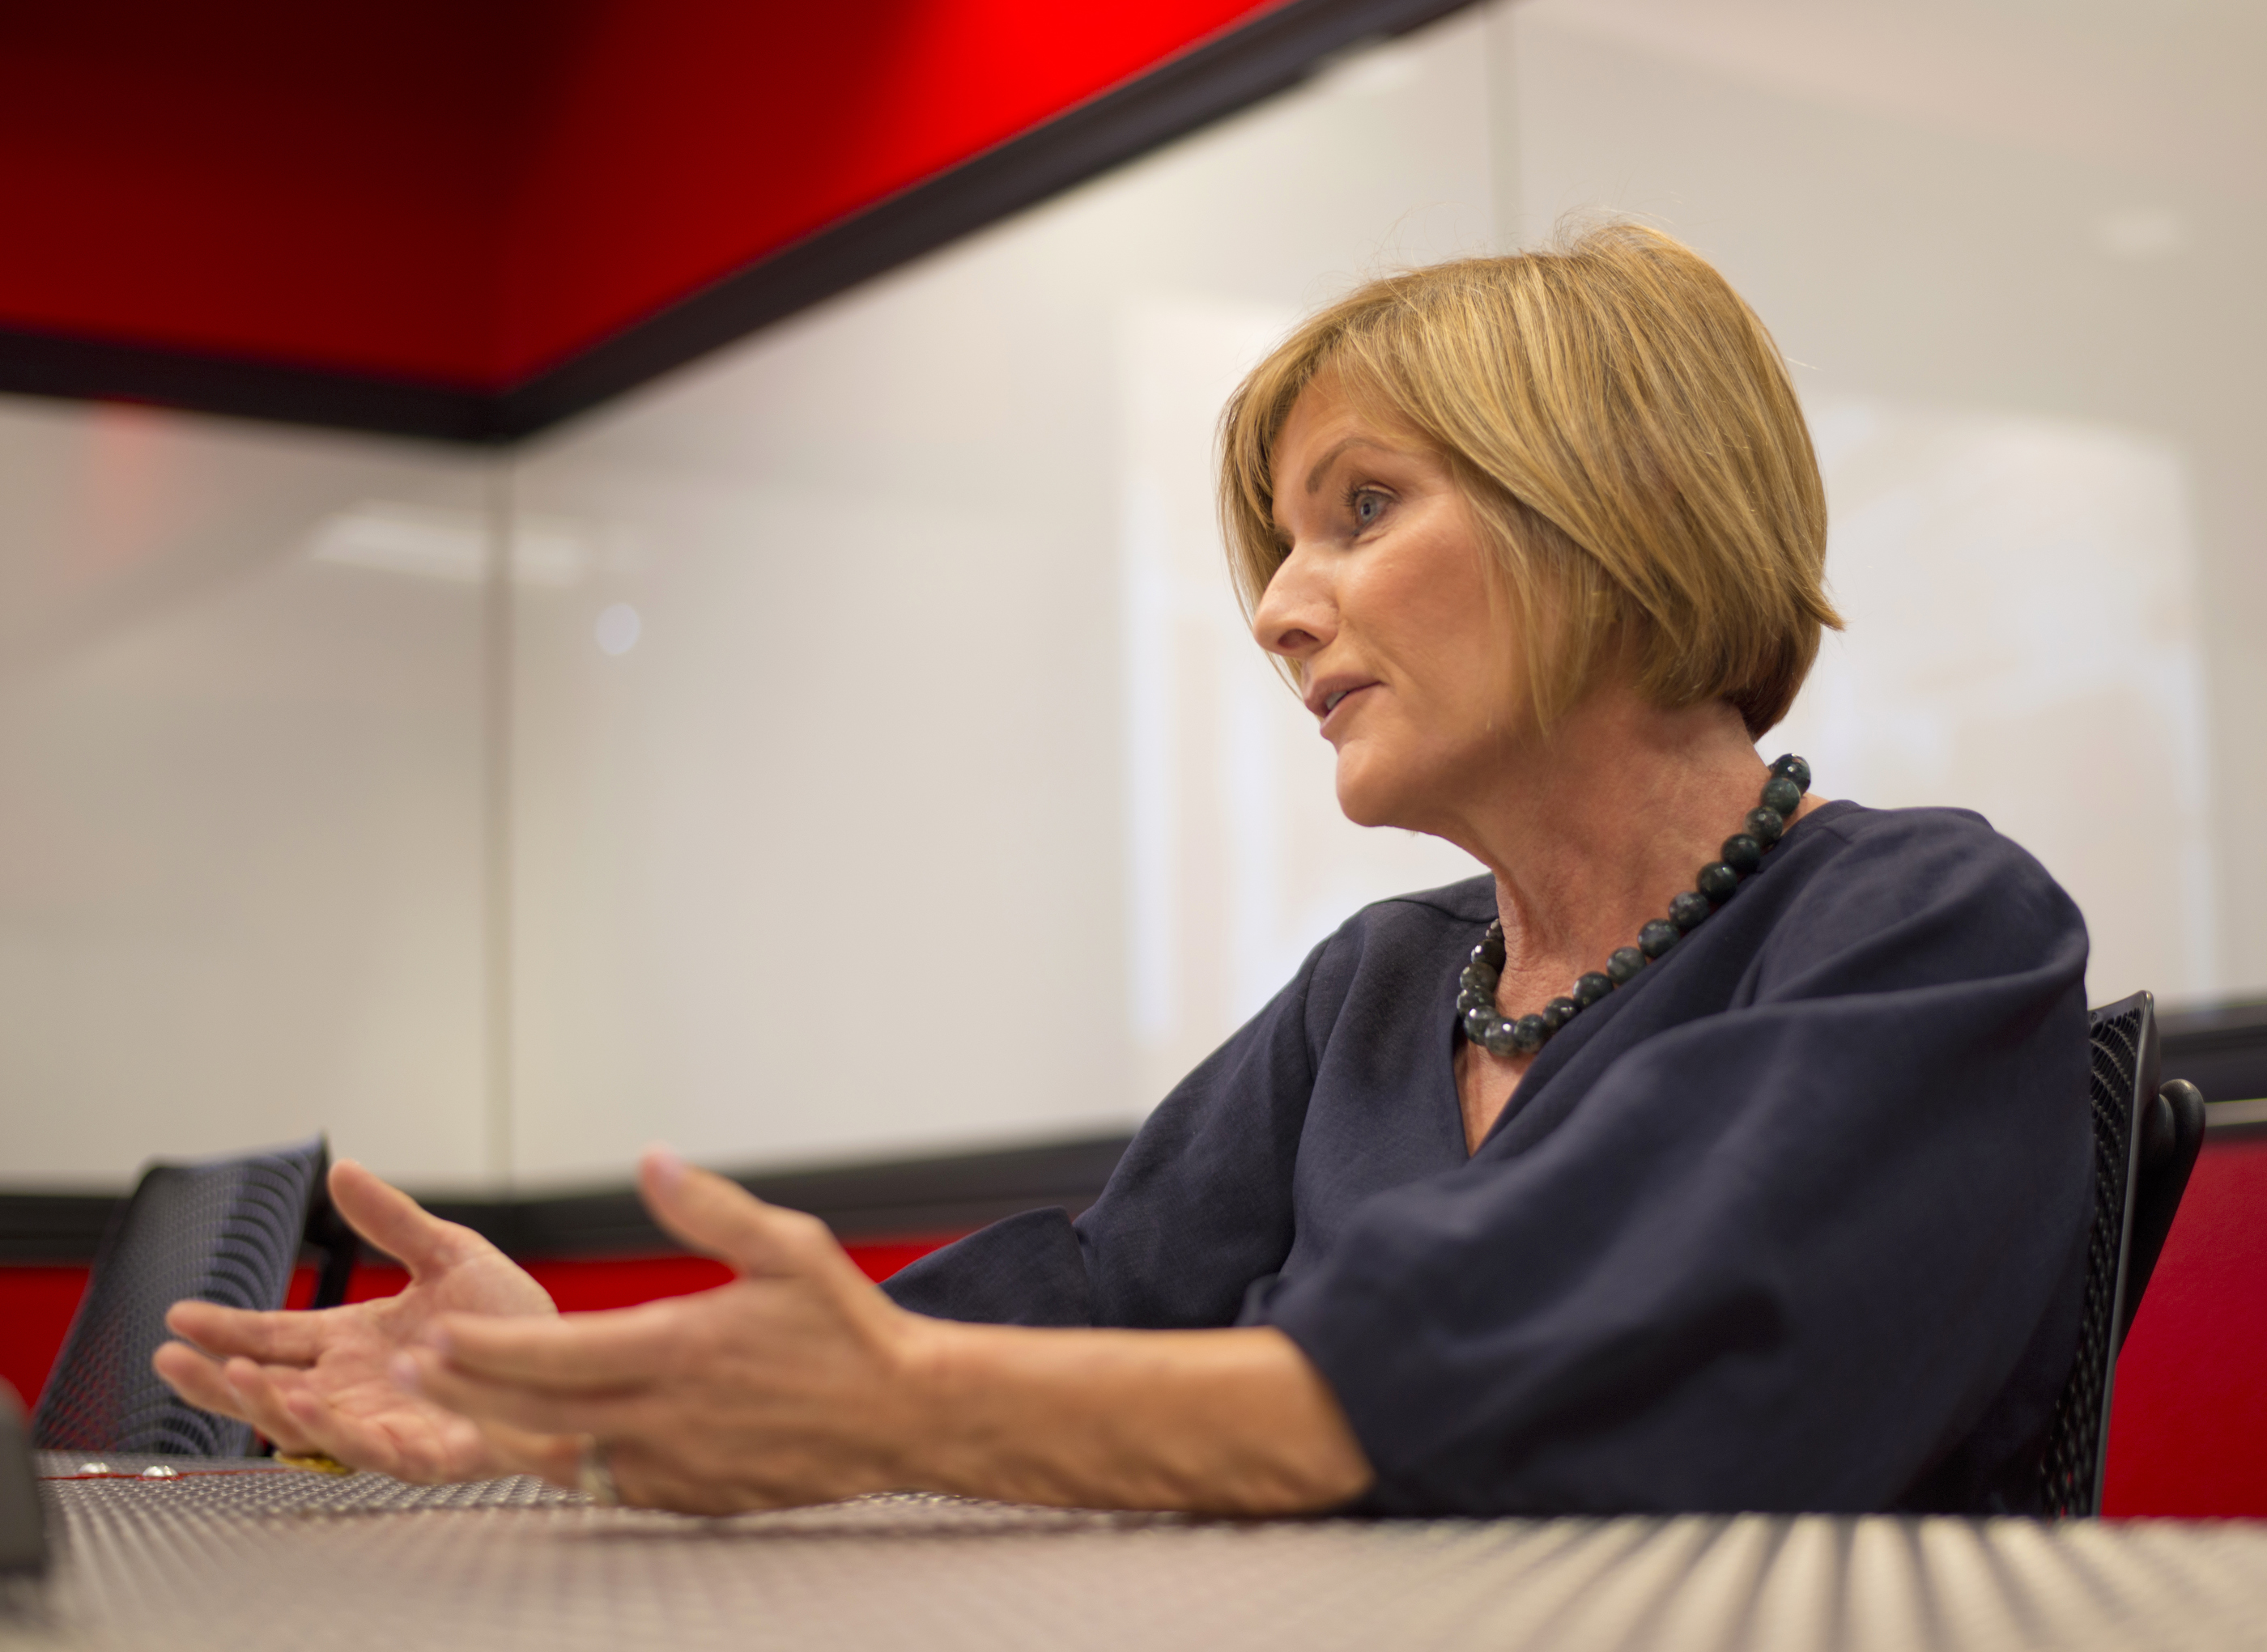 Democratic 3rd Congressional District candidate Susie Lee as seen during an interview inside The Innevation Center in Las Vegas